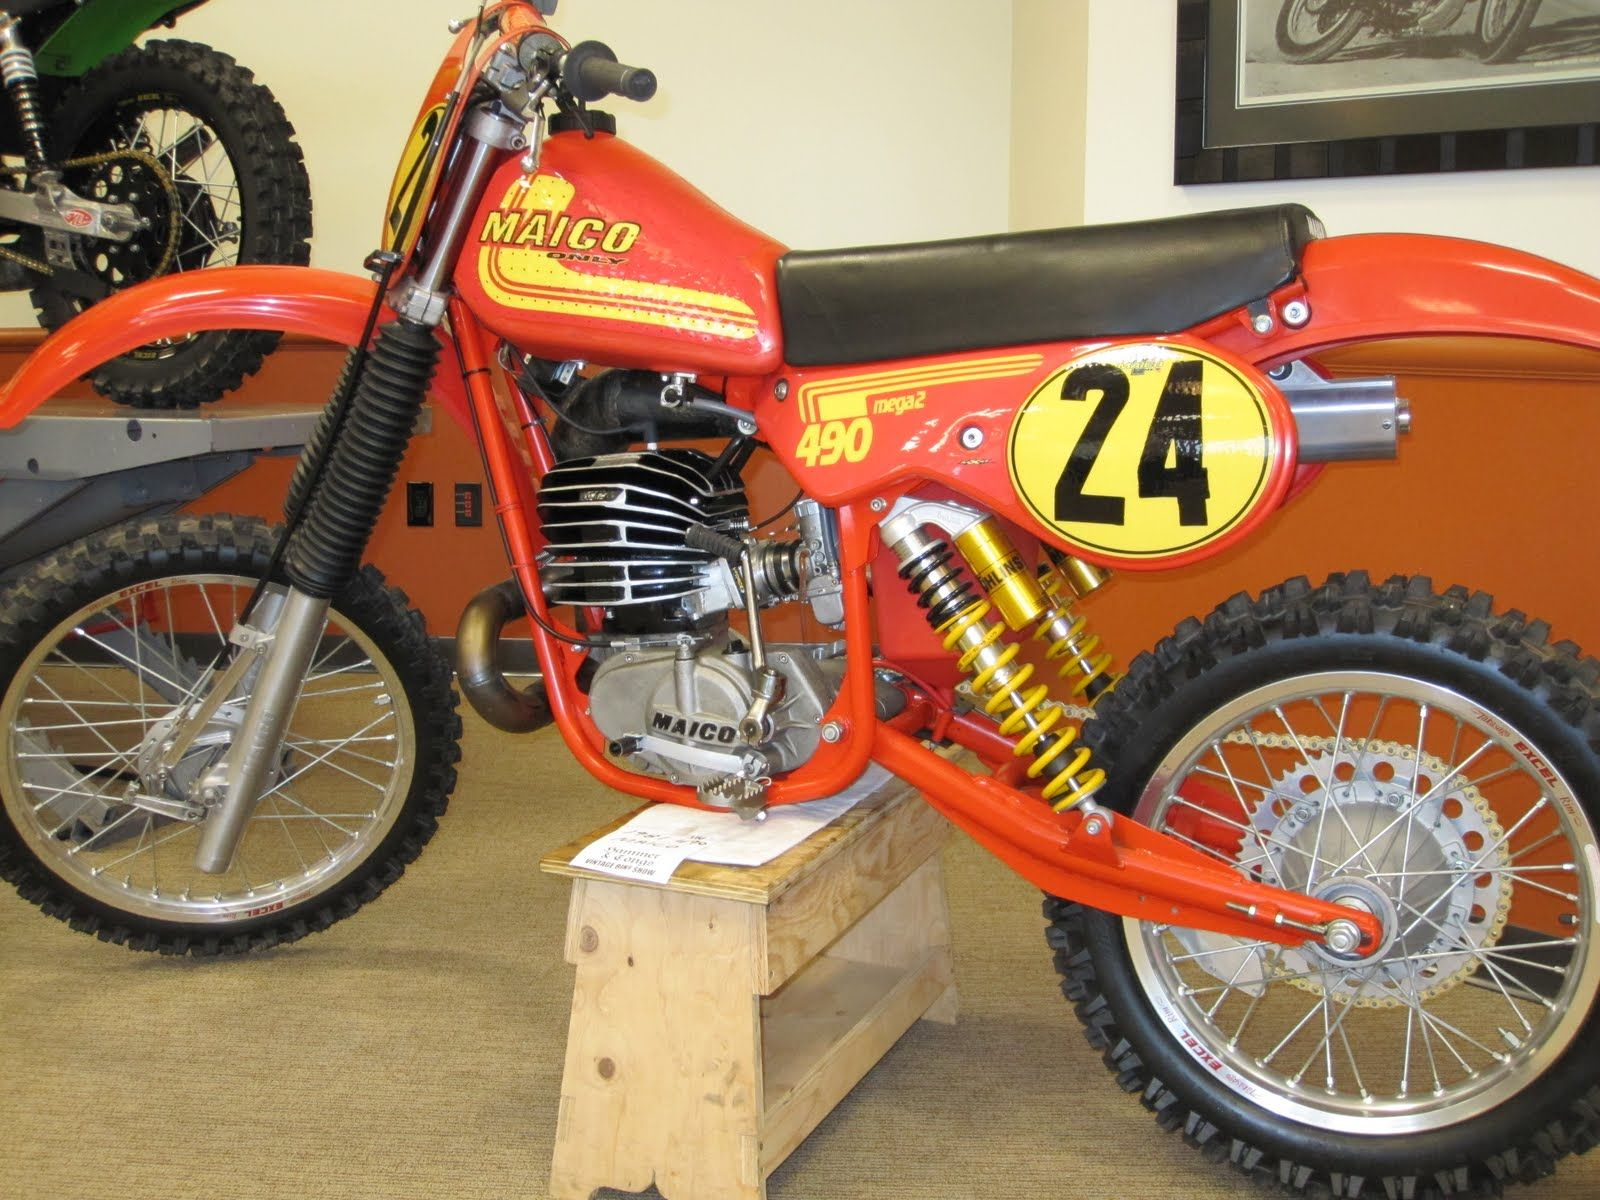 1981 Maico 490  The best of its era  | Favourite Motorbikes